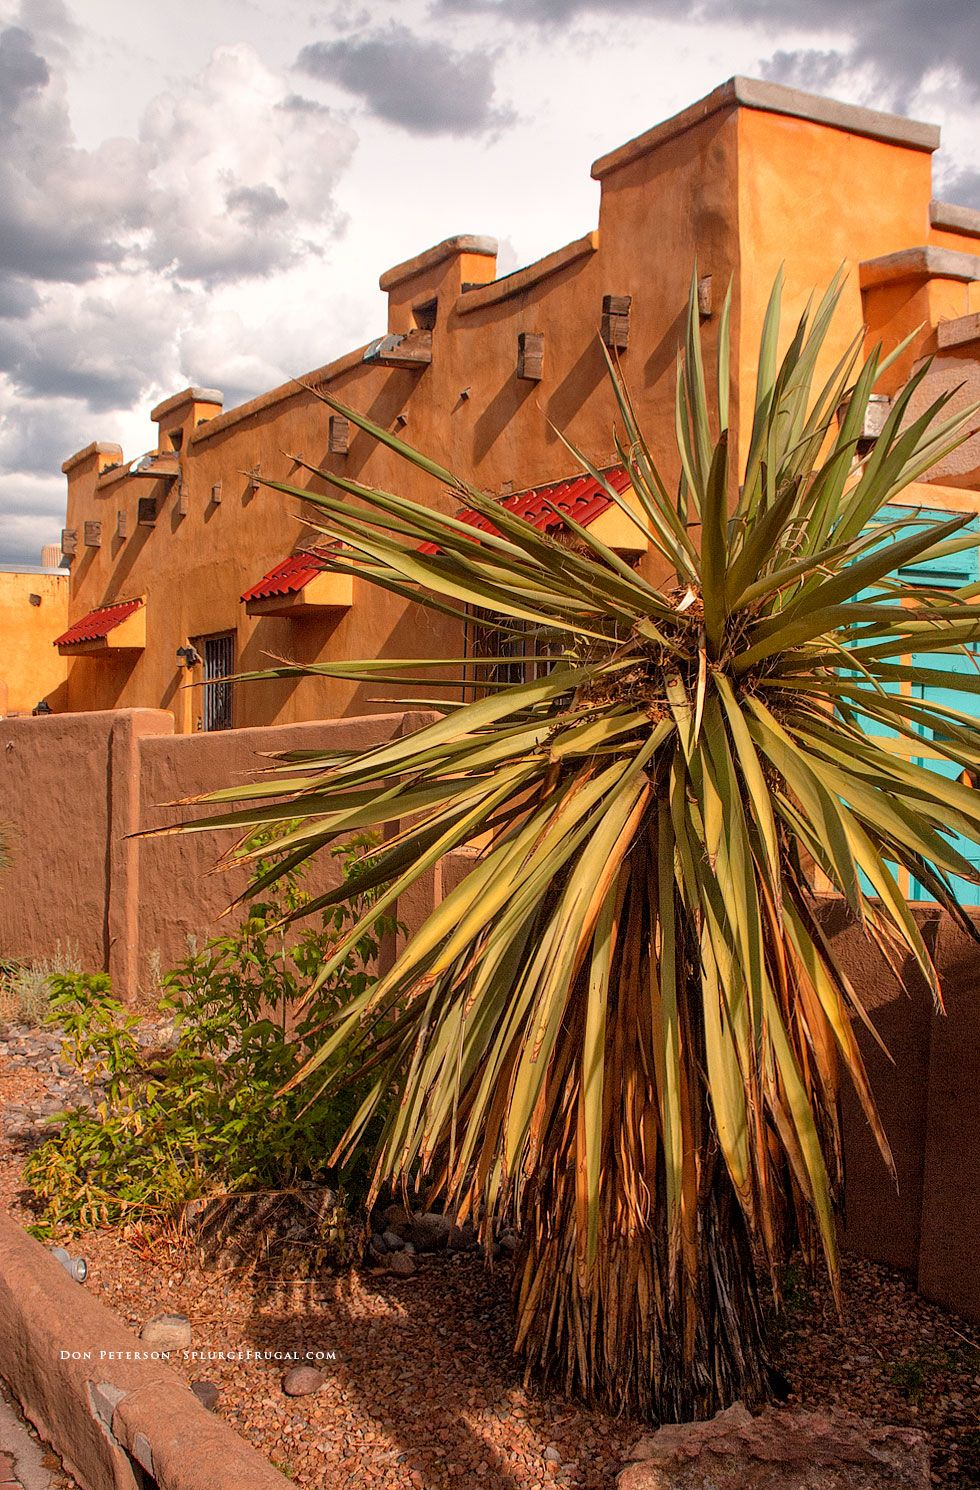 Featured Images of Albuquerque, NM Mexico culture, New